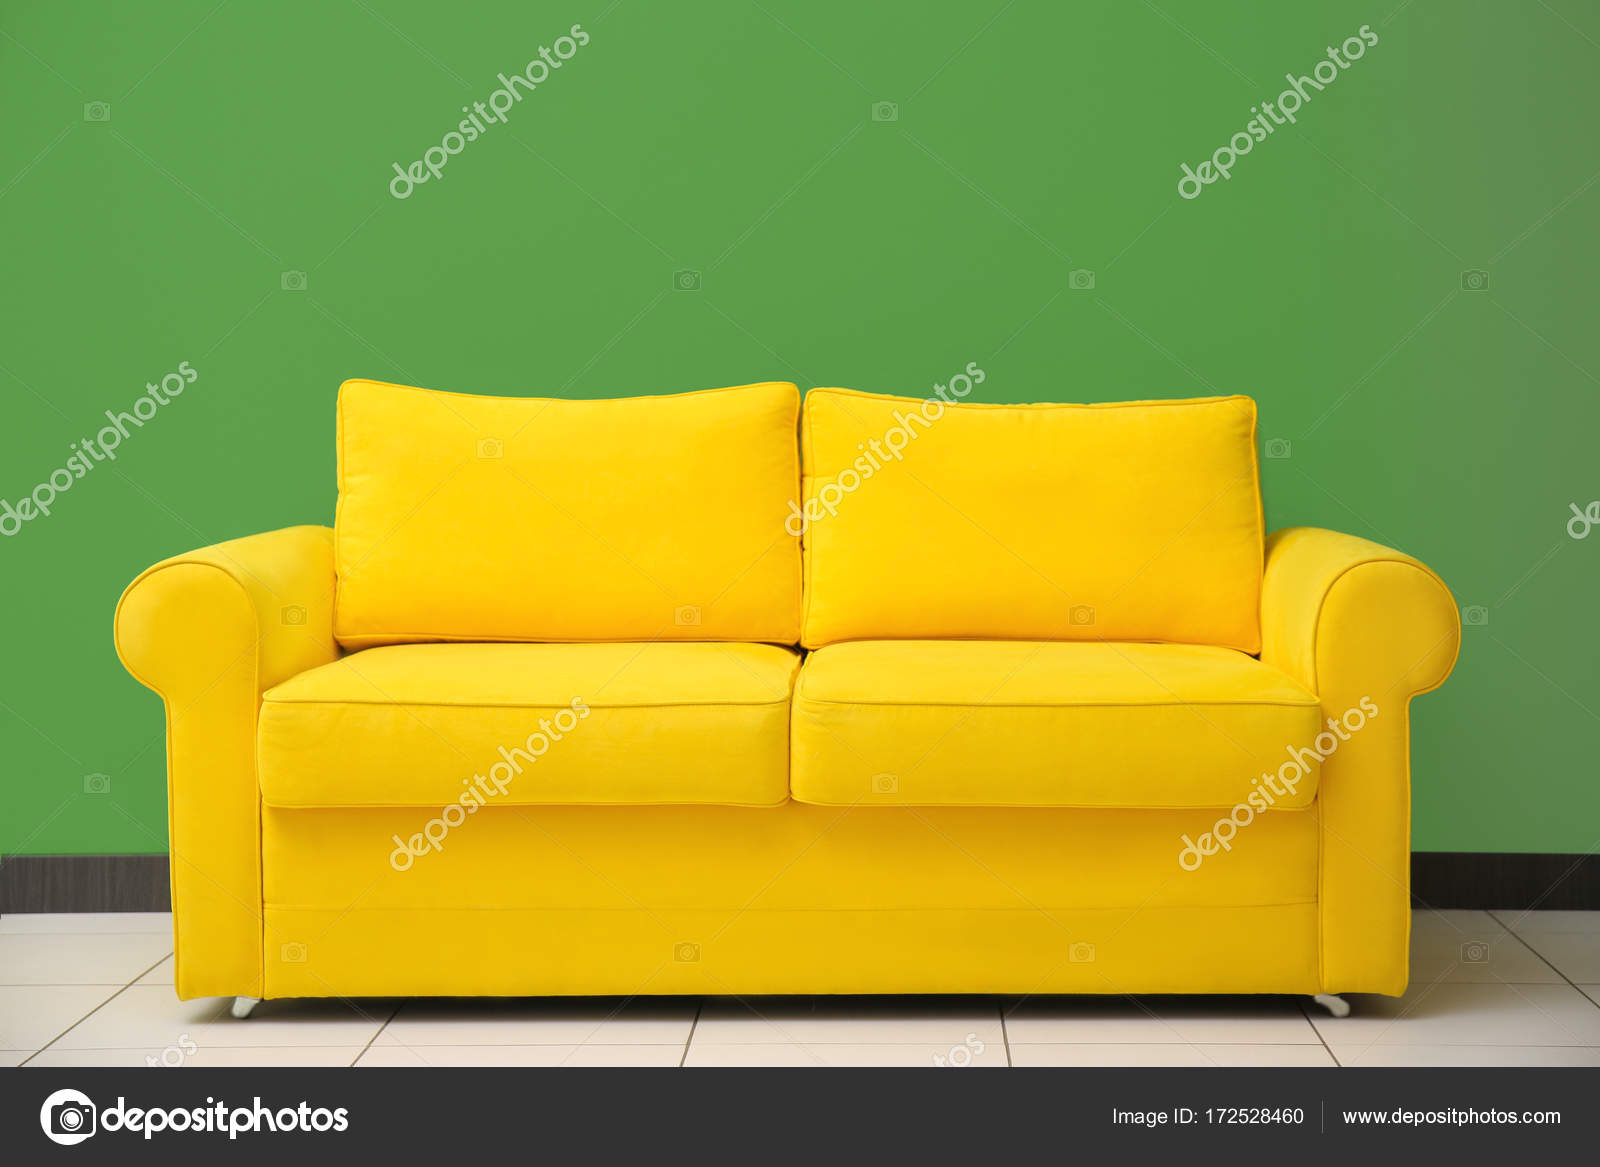 bright sofa leather and fabric sofas for sale yellow stock photo c belchonock 172528460 against green wall indoors by